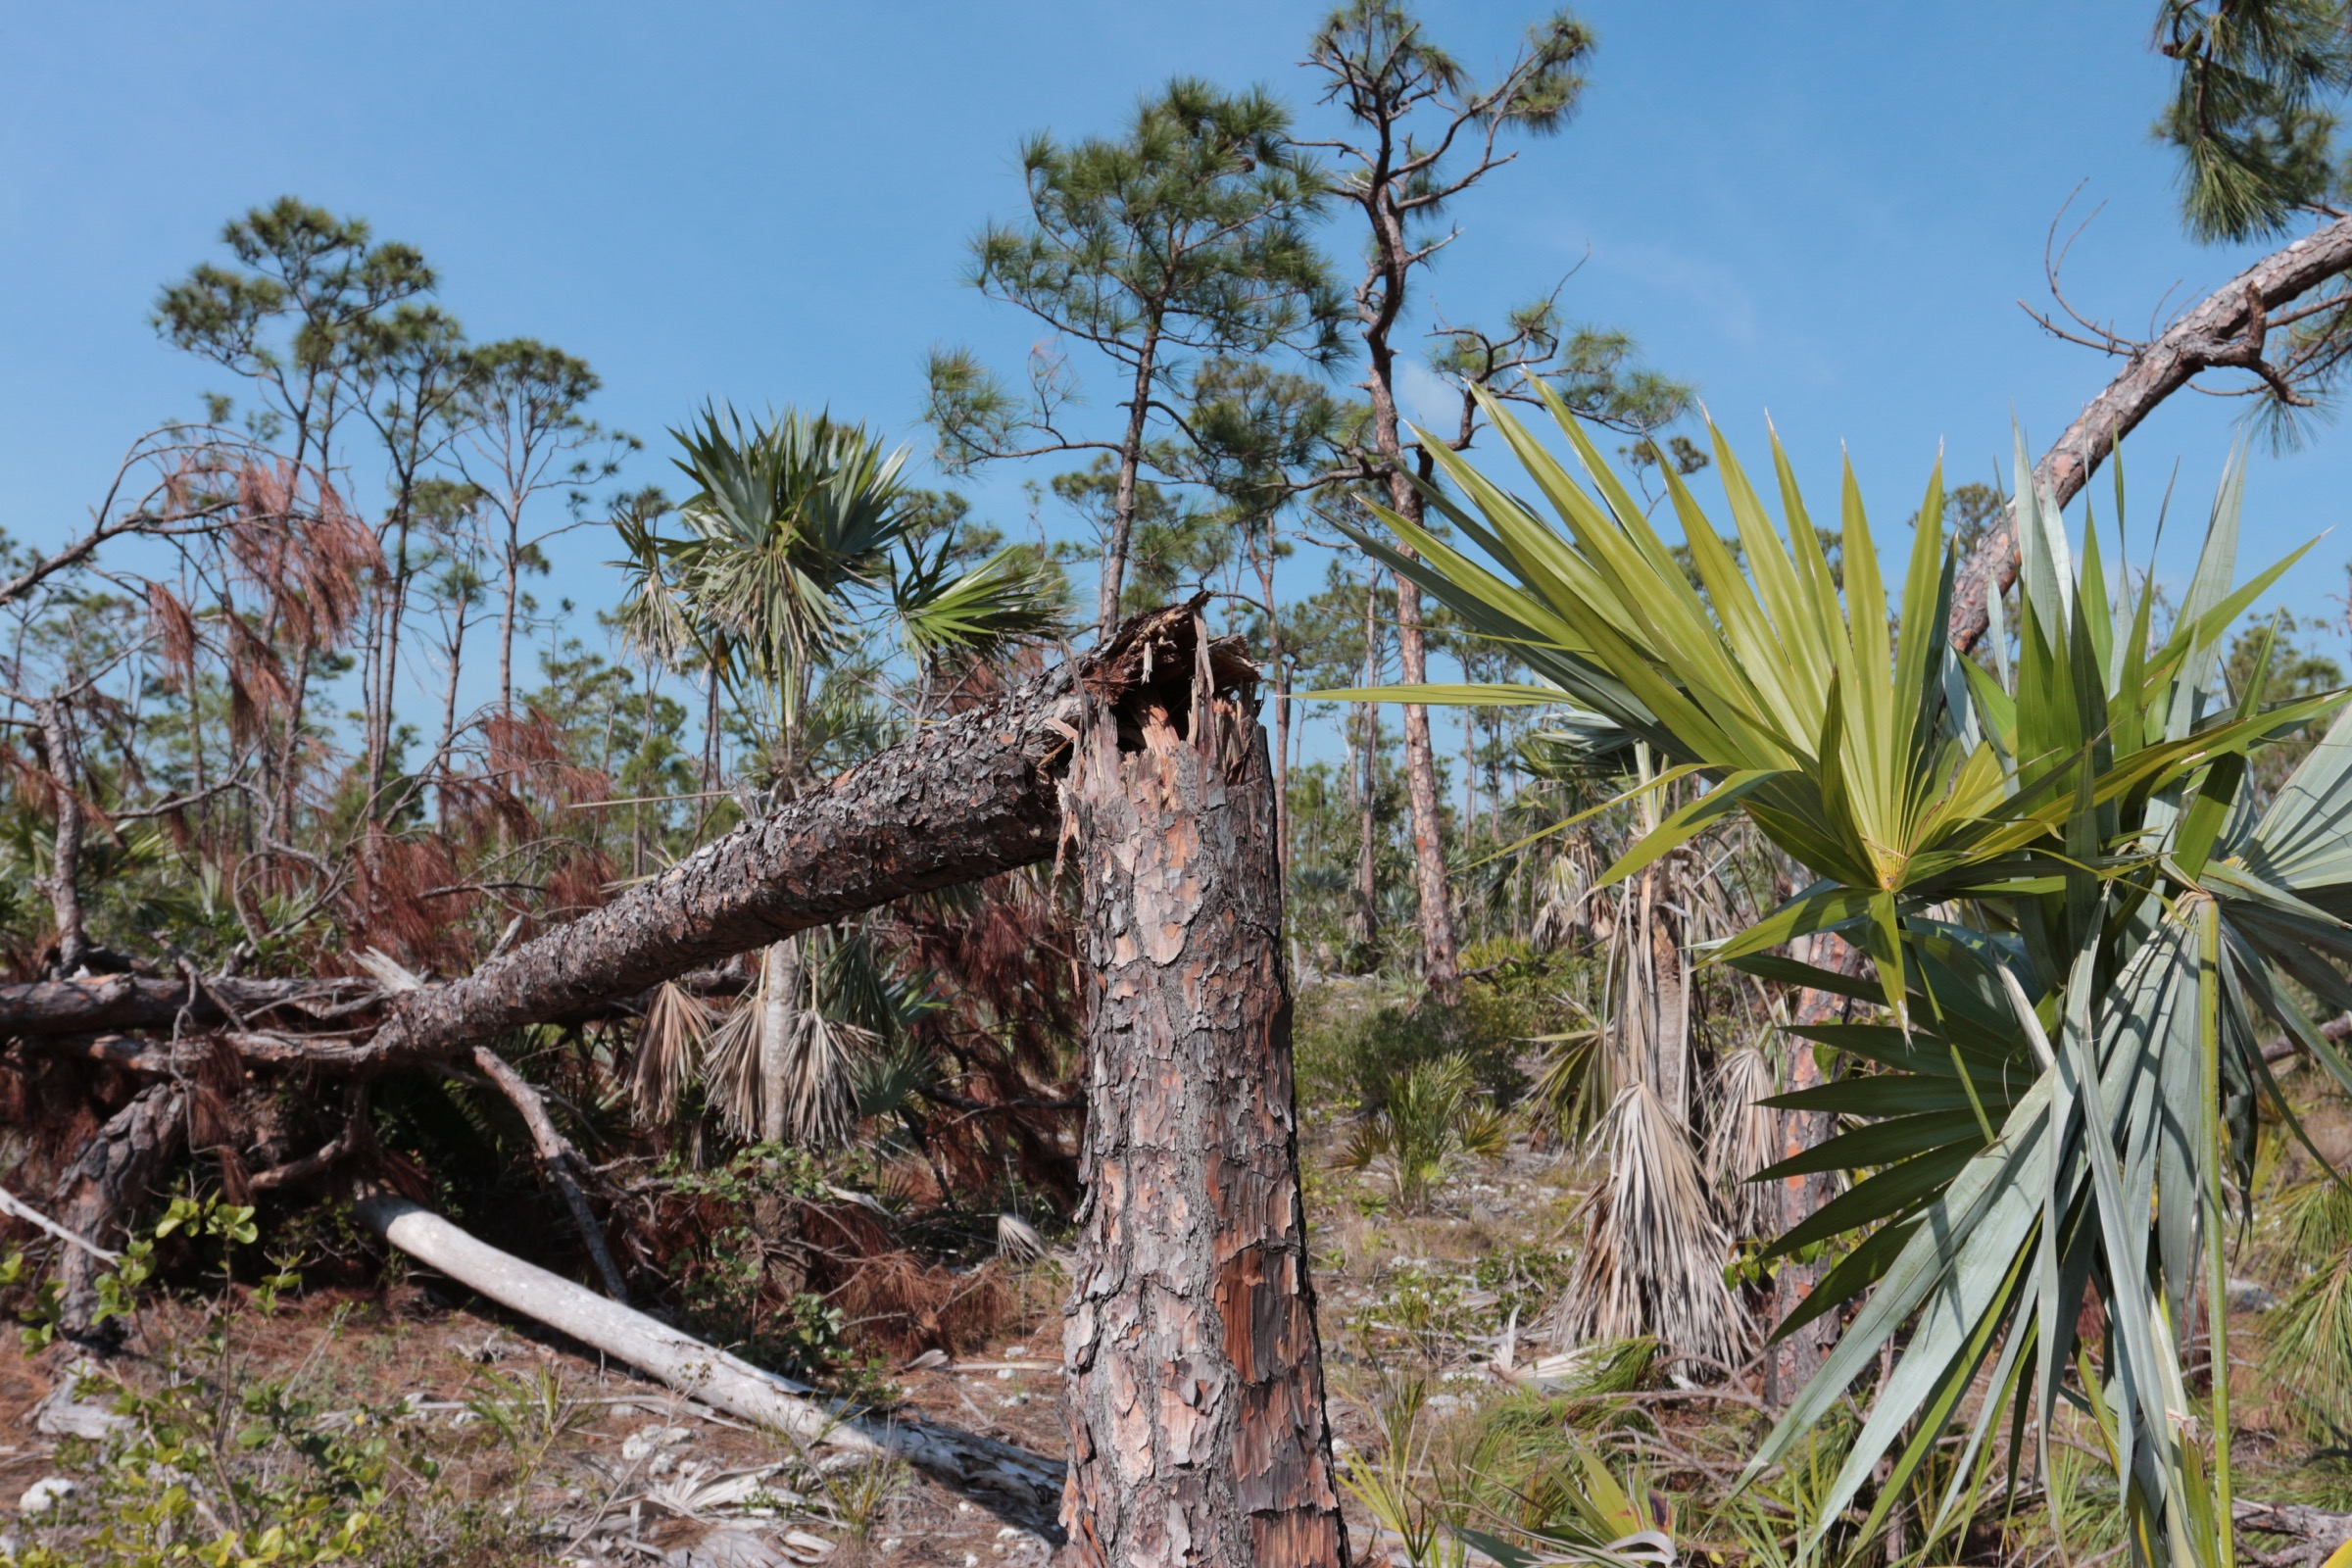 Hurricane Irma made landfall at Cudjoe Key Florida on September 10, 2017. The storm uprooted and snapped trees, including these in an area on Big Pine Key thought to be home to Bartram's scrub hairstreak butterflies. Photograph by Hannah Hoag